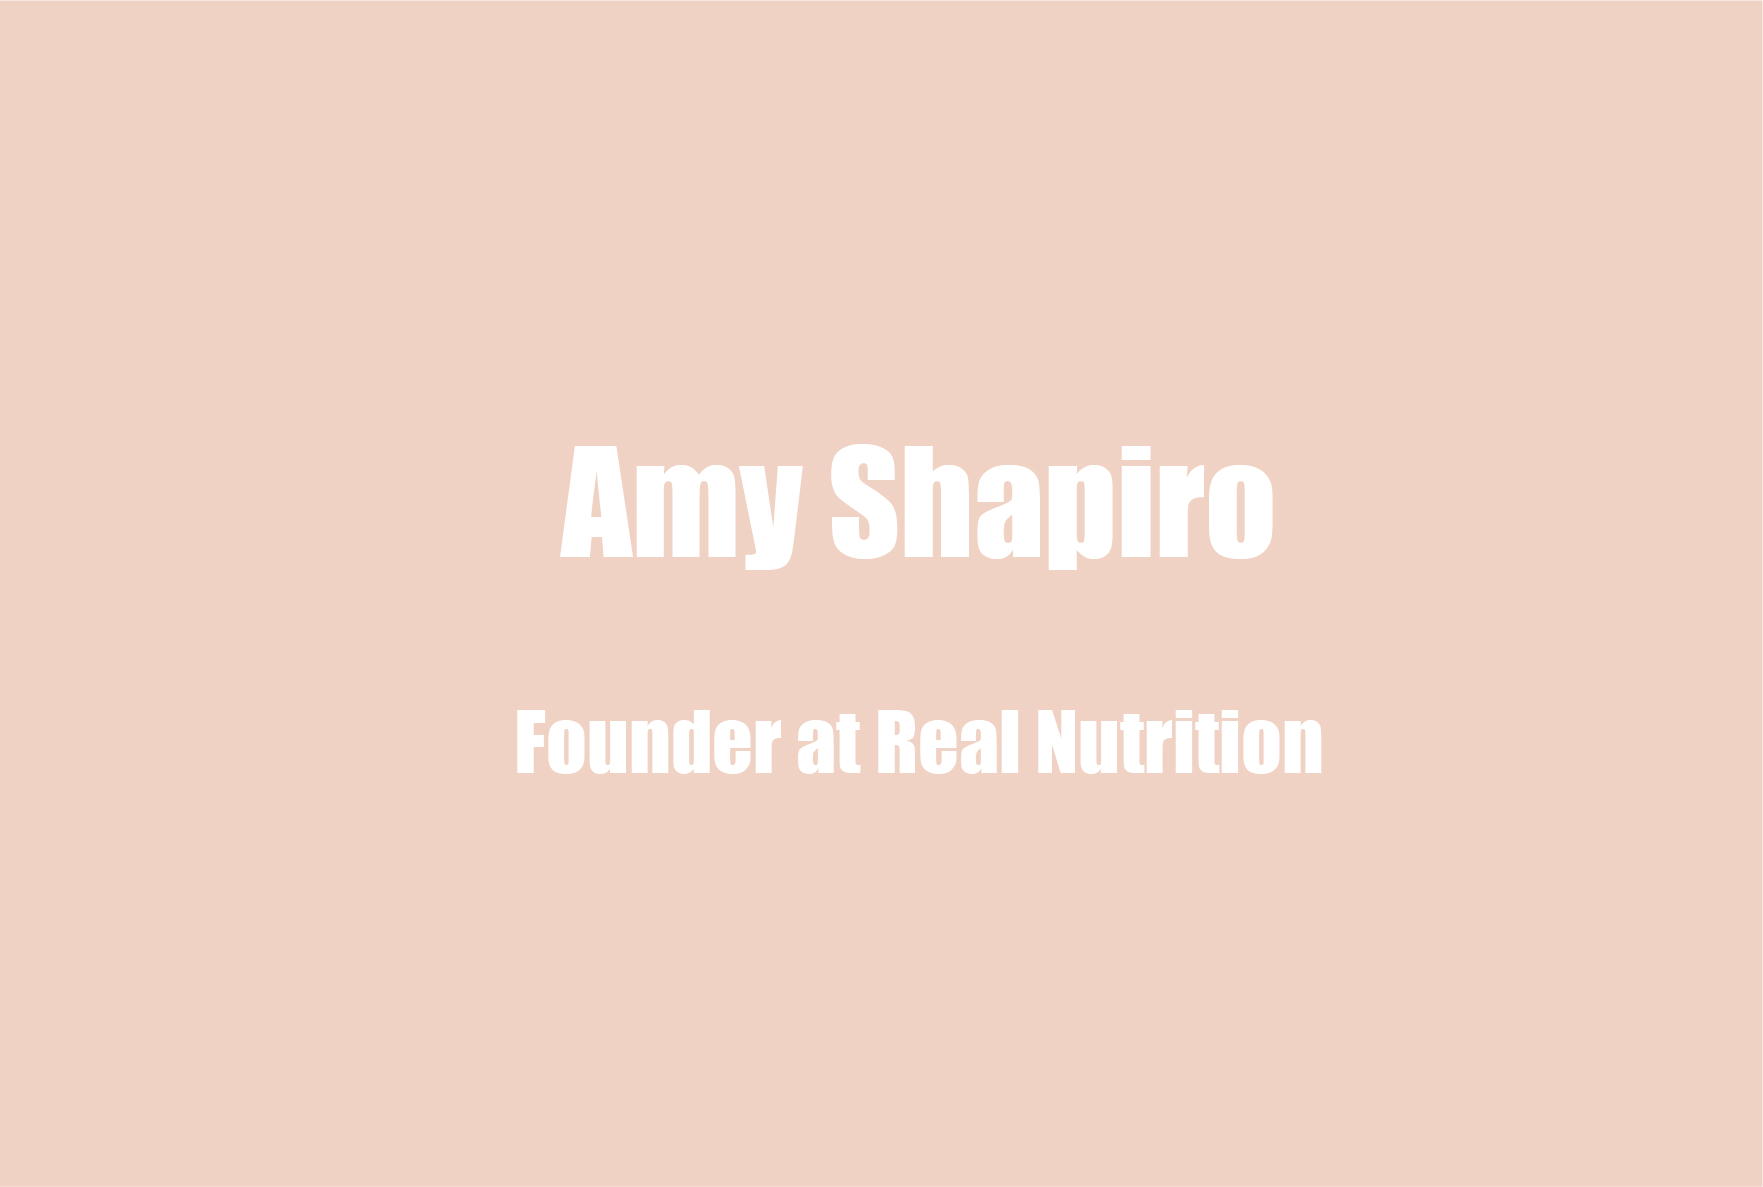 Amy Shapiro, Nutritionist and Founder of Real Nutrition, on Finding Foods that Help with Mental Health and Wellness, and the Importance of Prebiotics and Probiotics